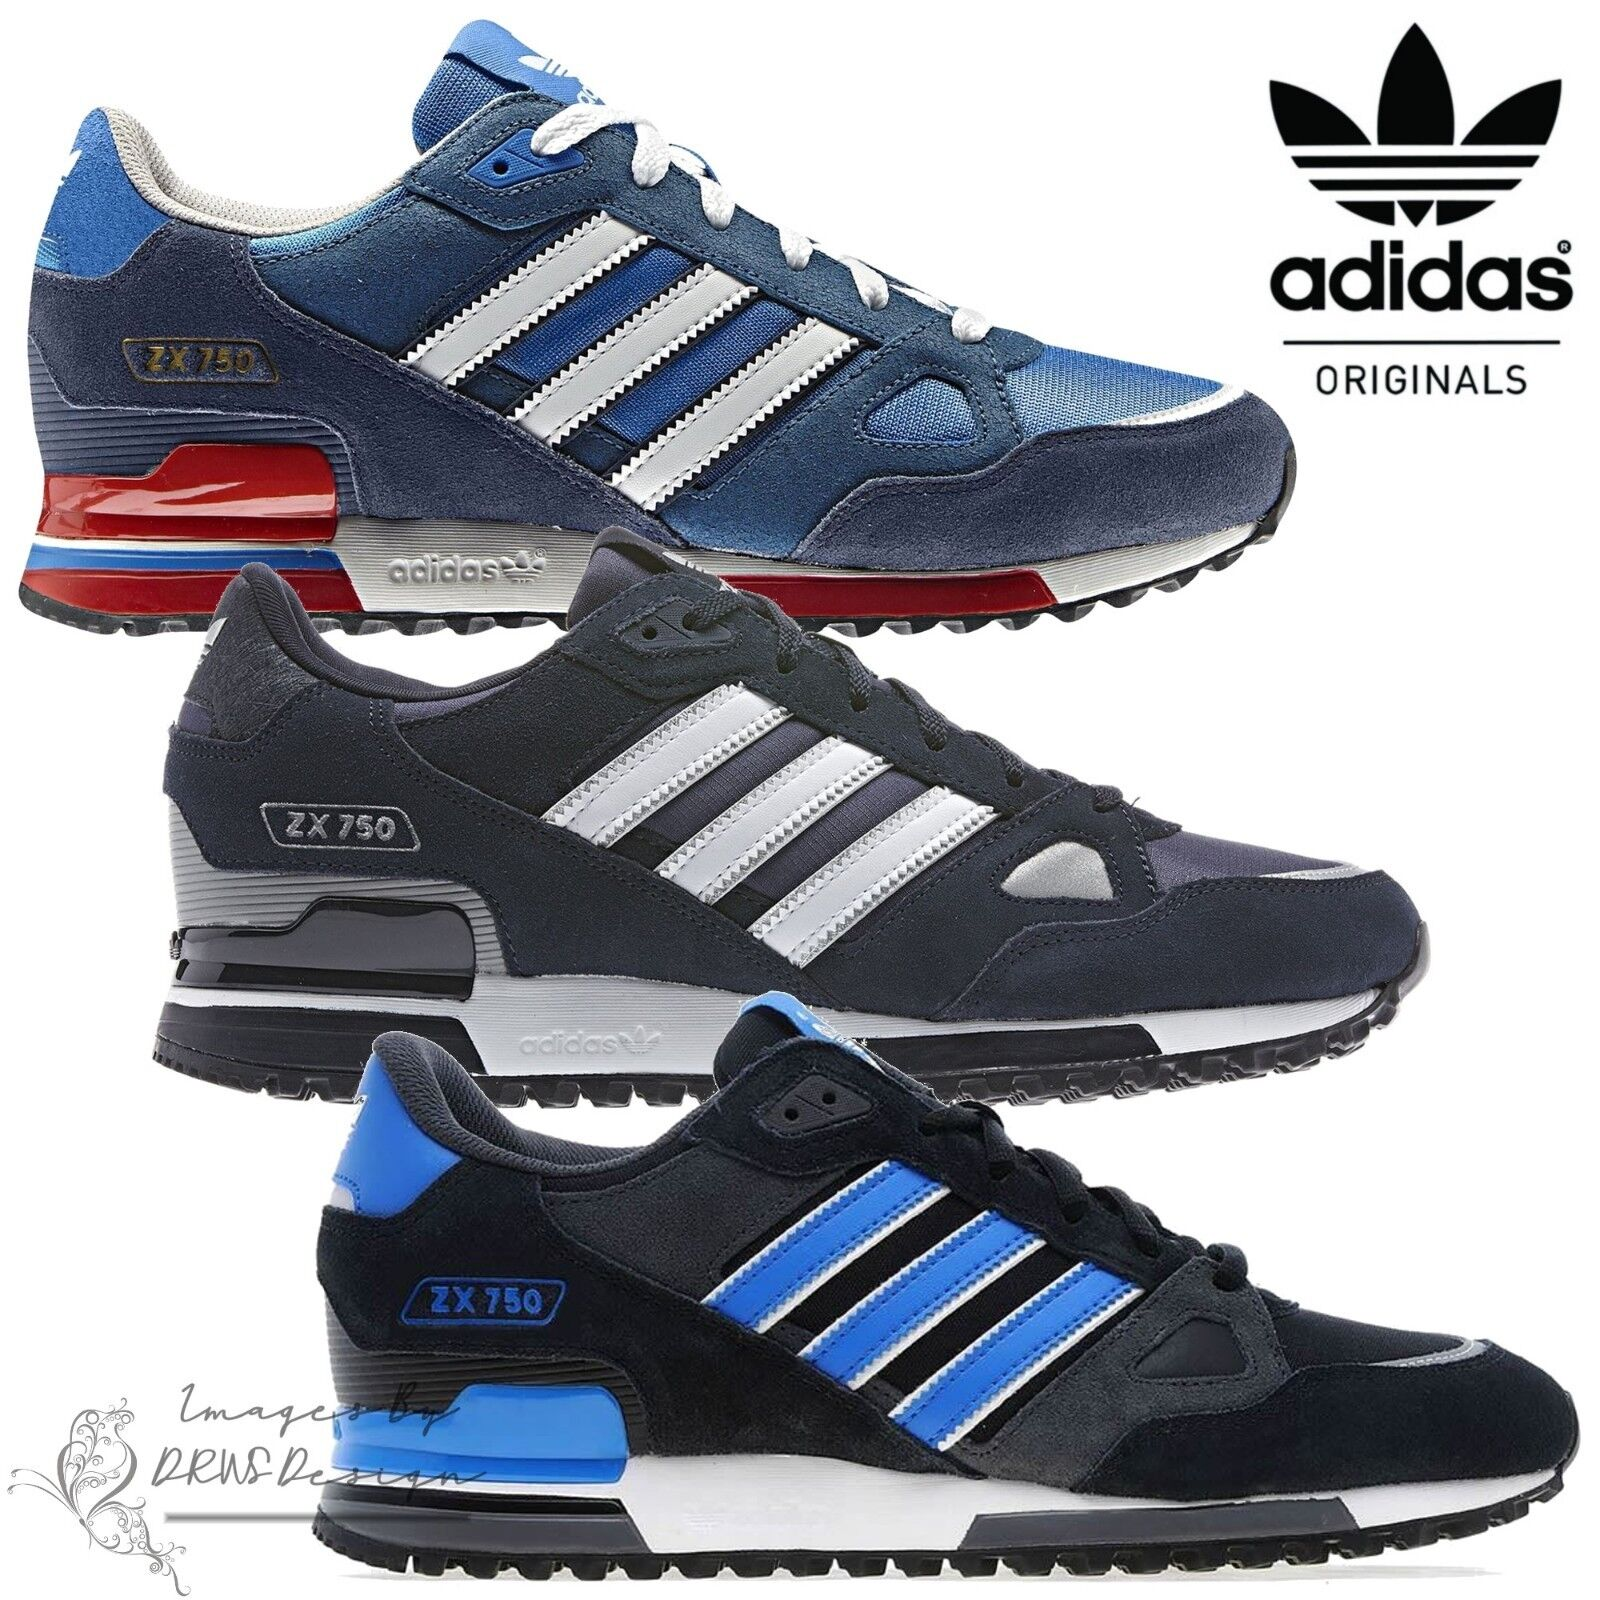 Adidas Originals ZX 750 Men's Suede Trainers Retro Casual Sports Running shoes